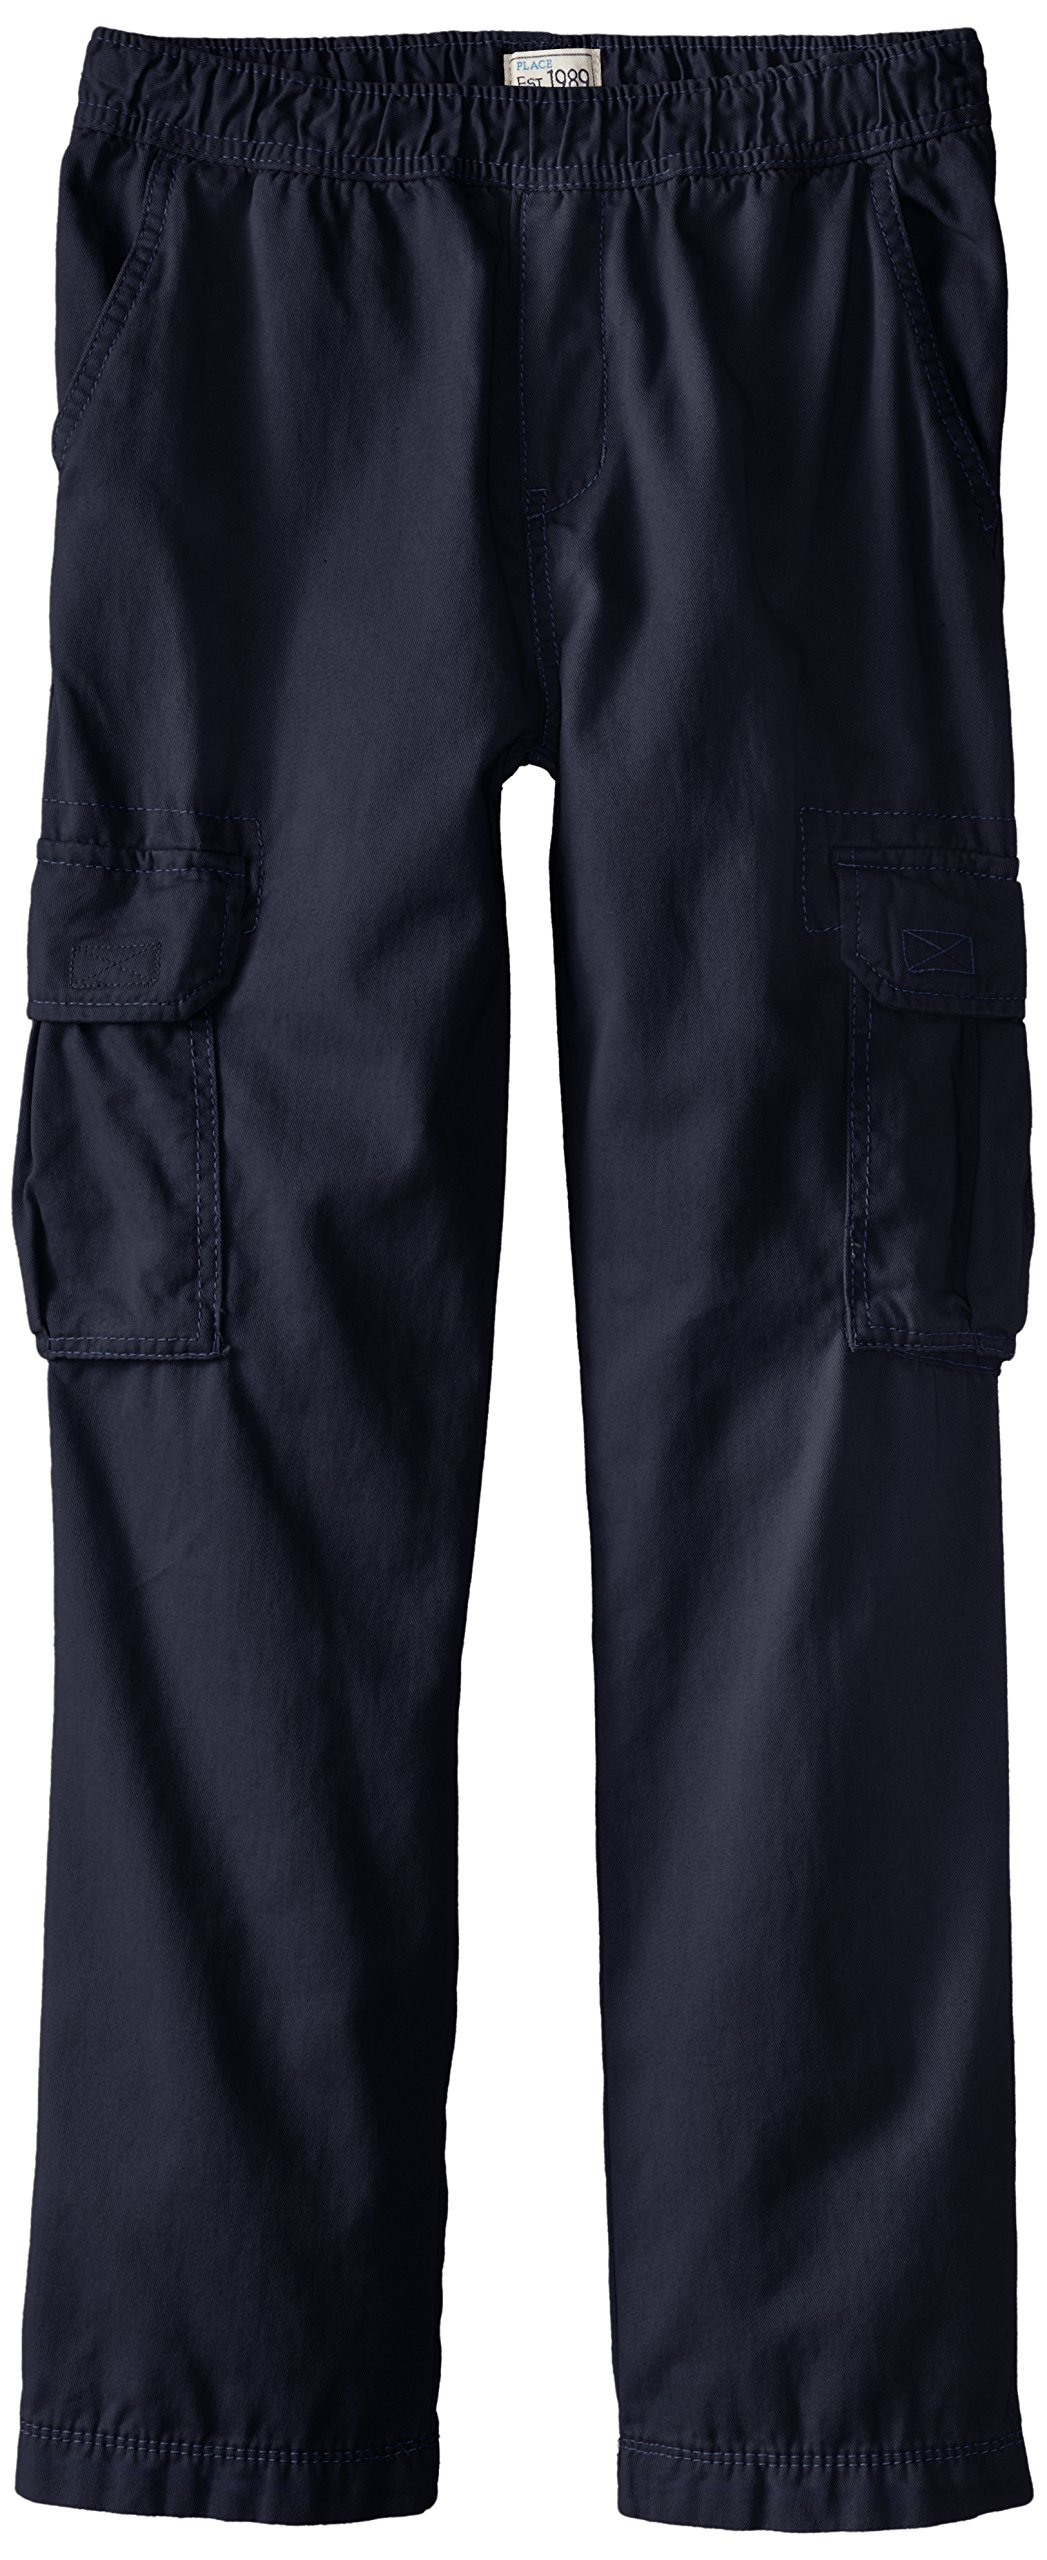 The Children's Place Boys Size His Pull-on Cargo Pants, New Navy, 10 Slim